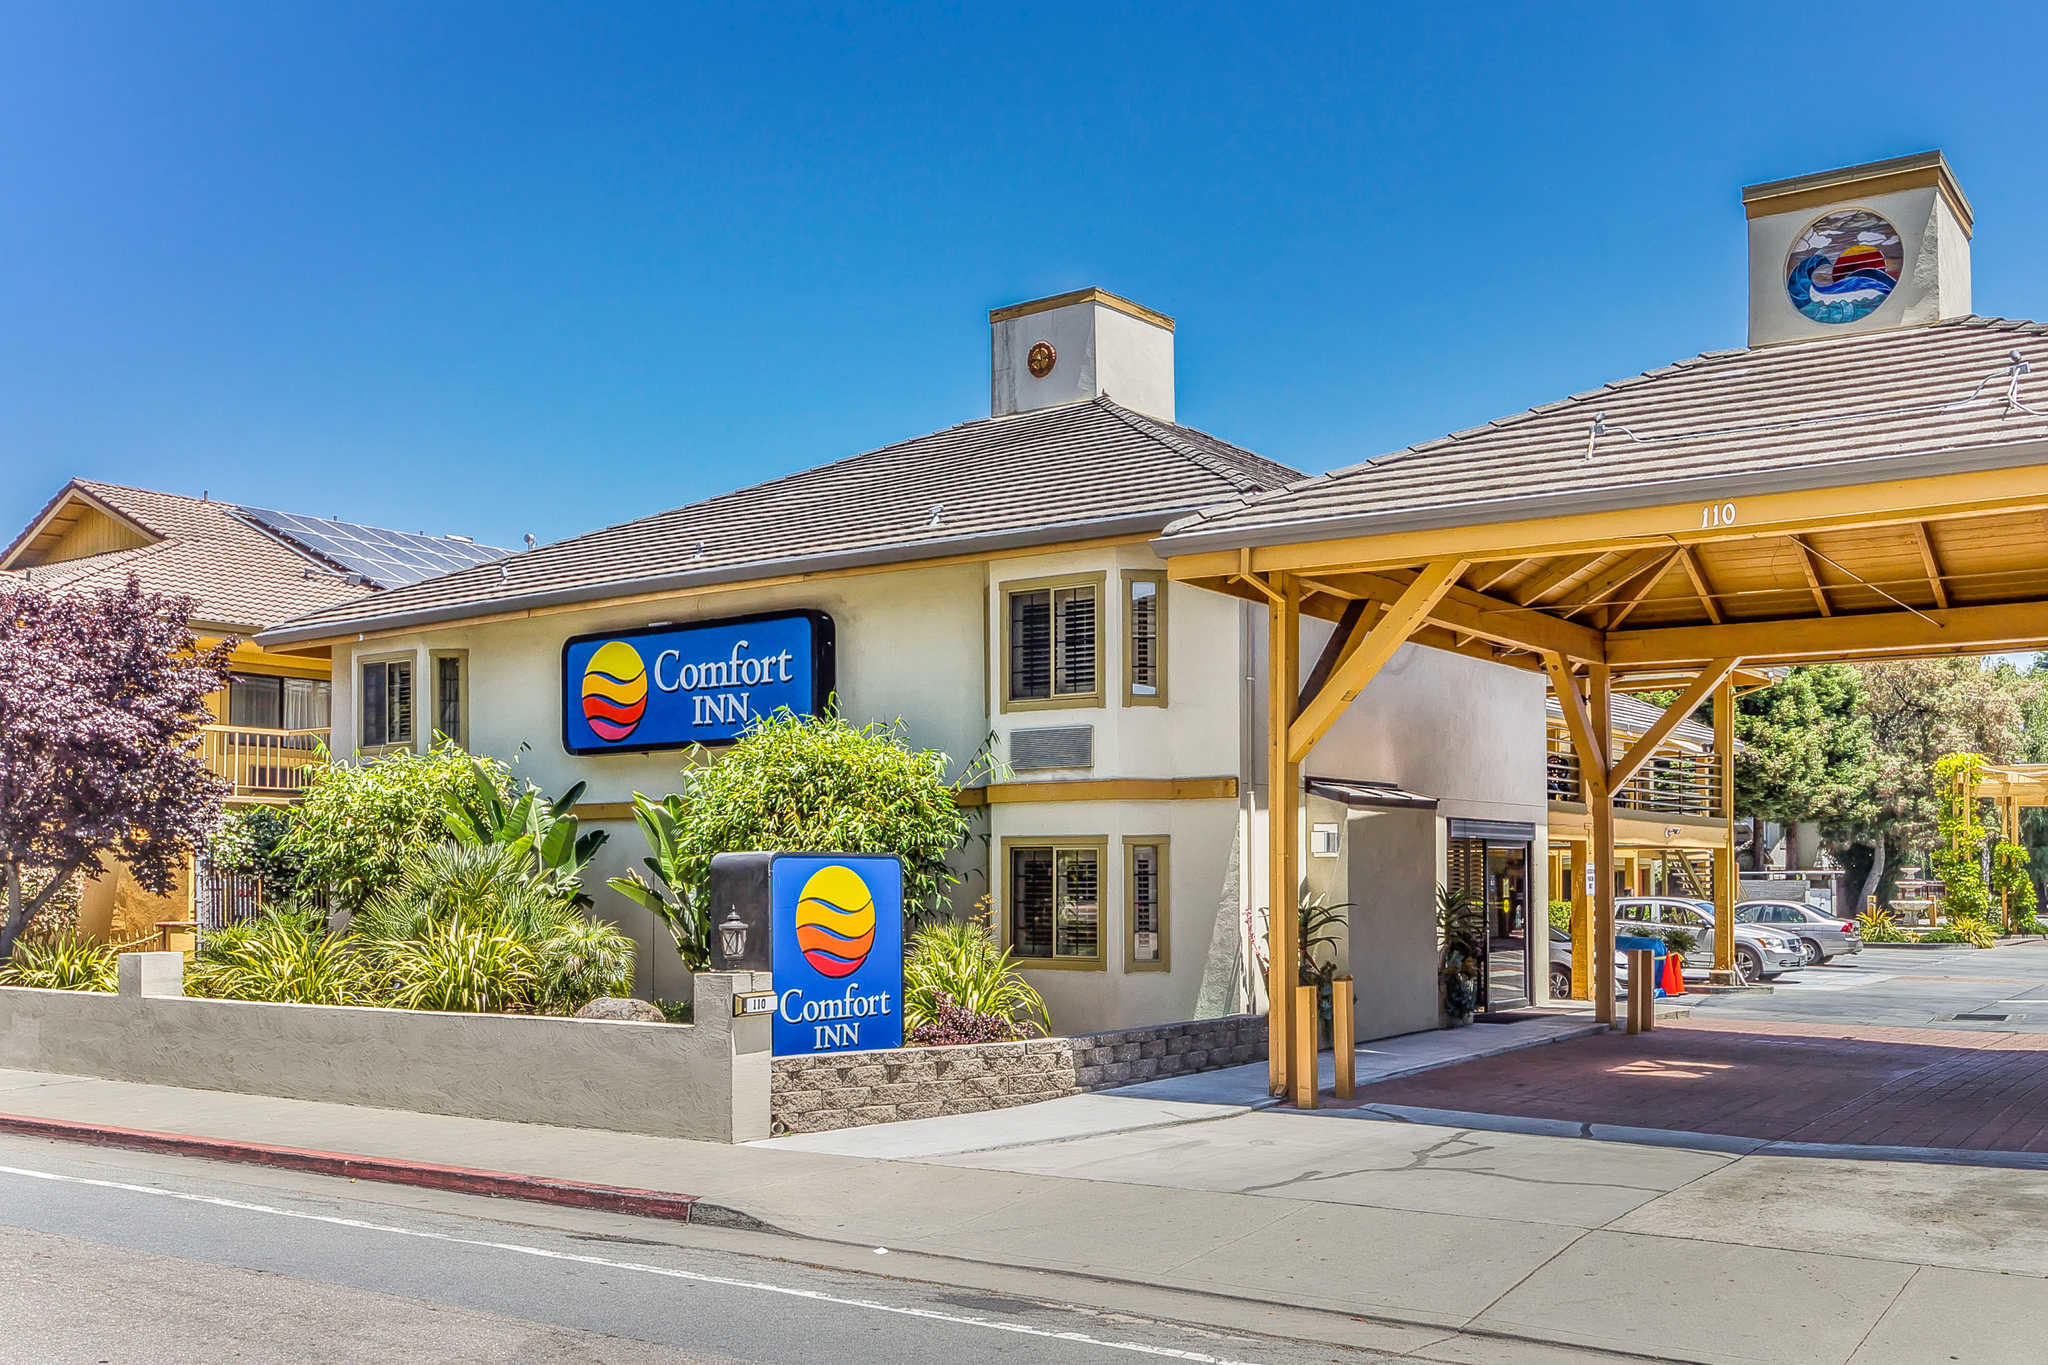 Hotels Motels In Santa Cruz Ca